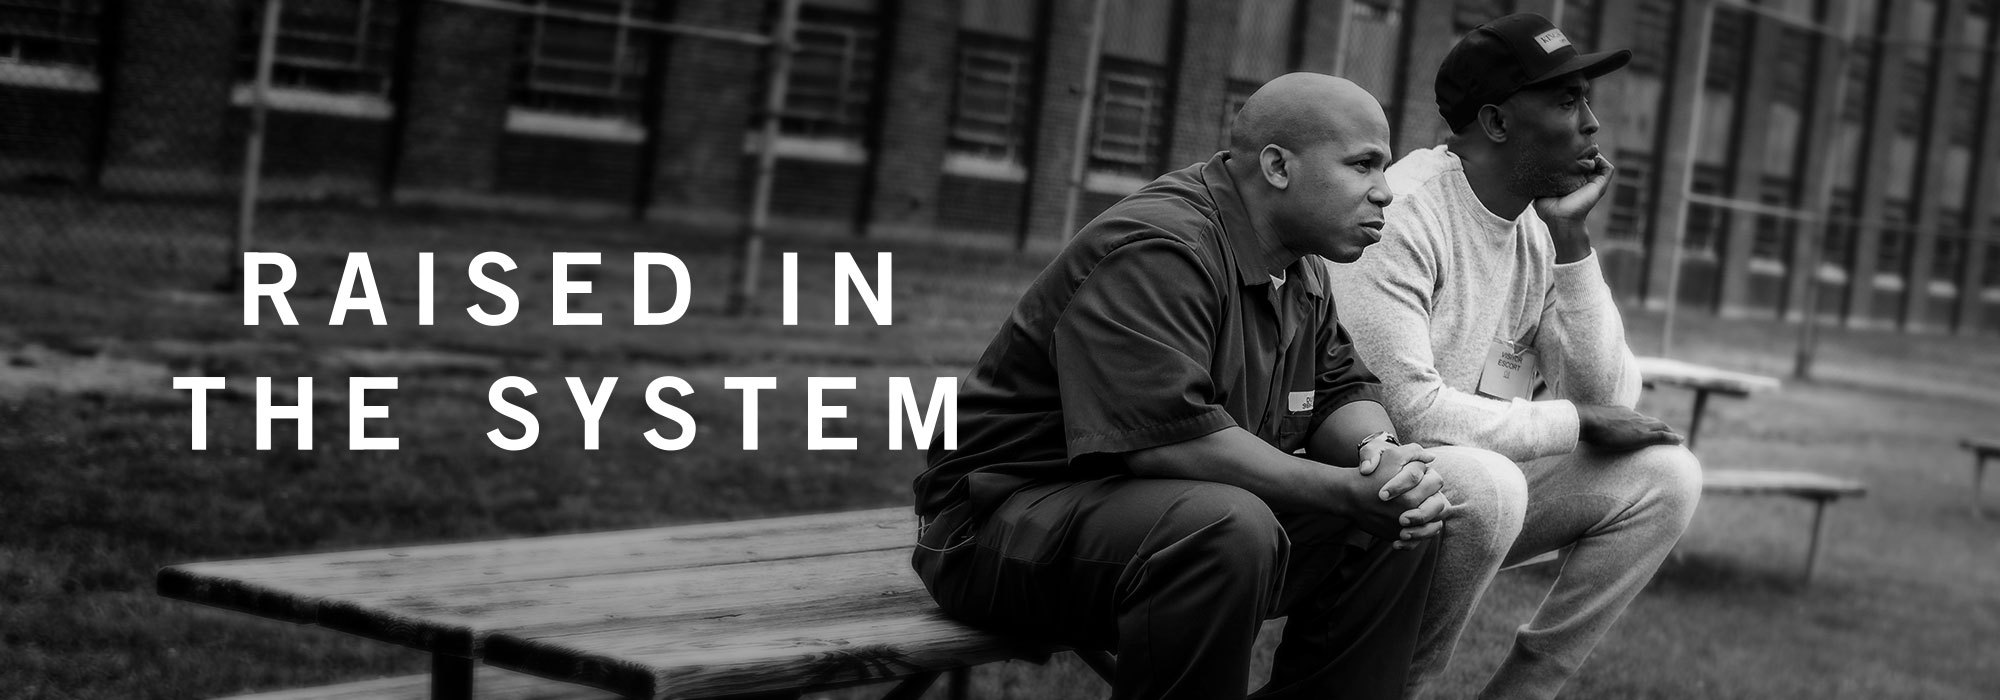 Raised in the System | HBO